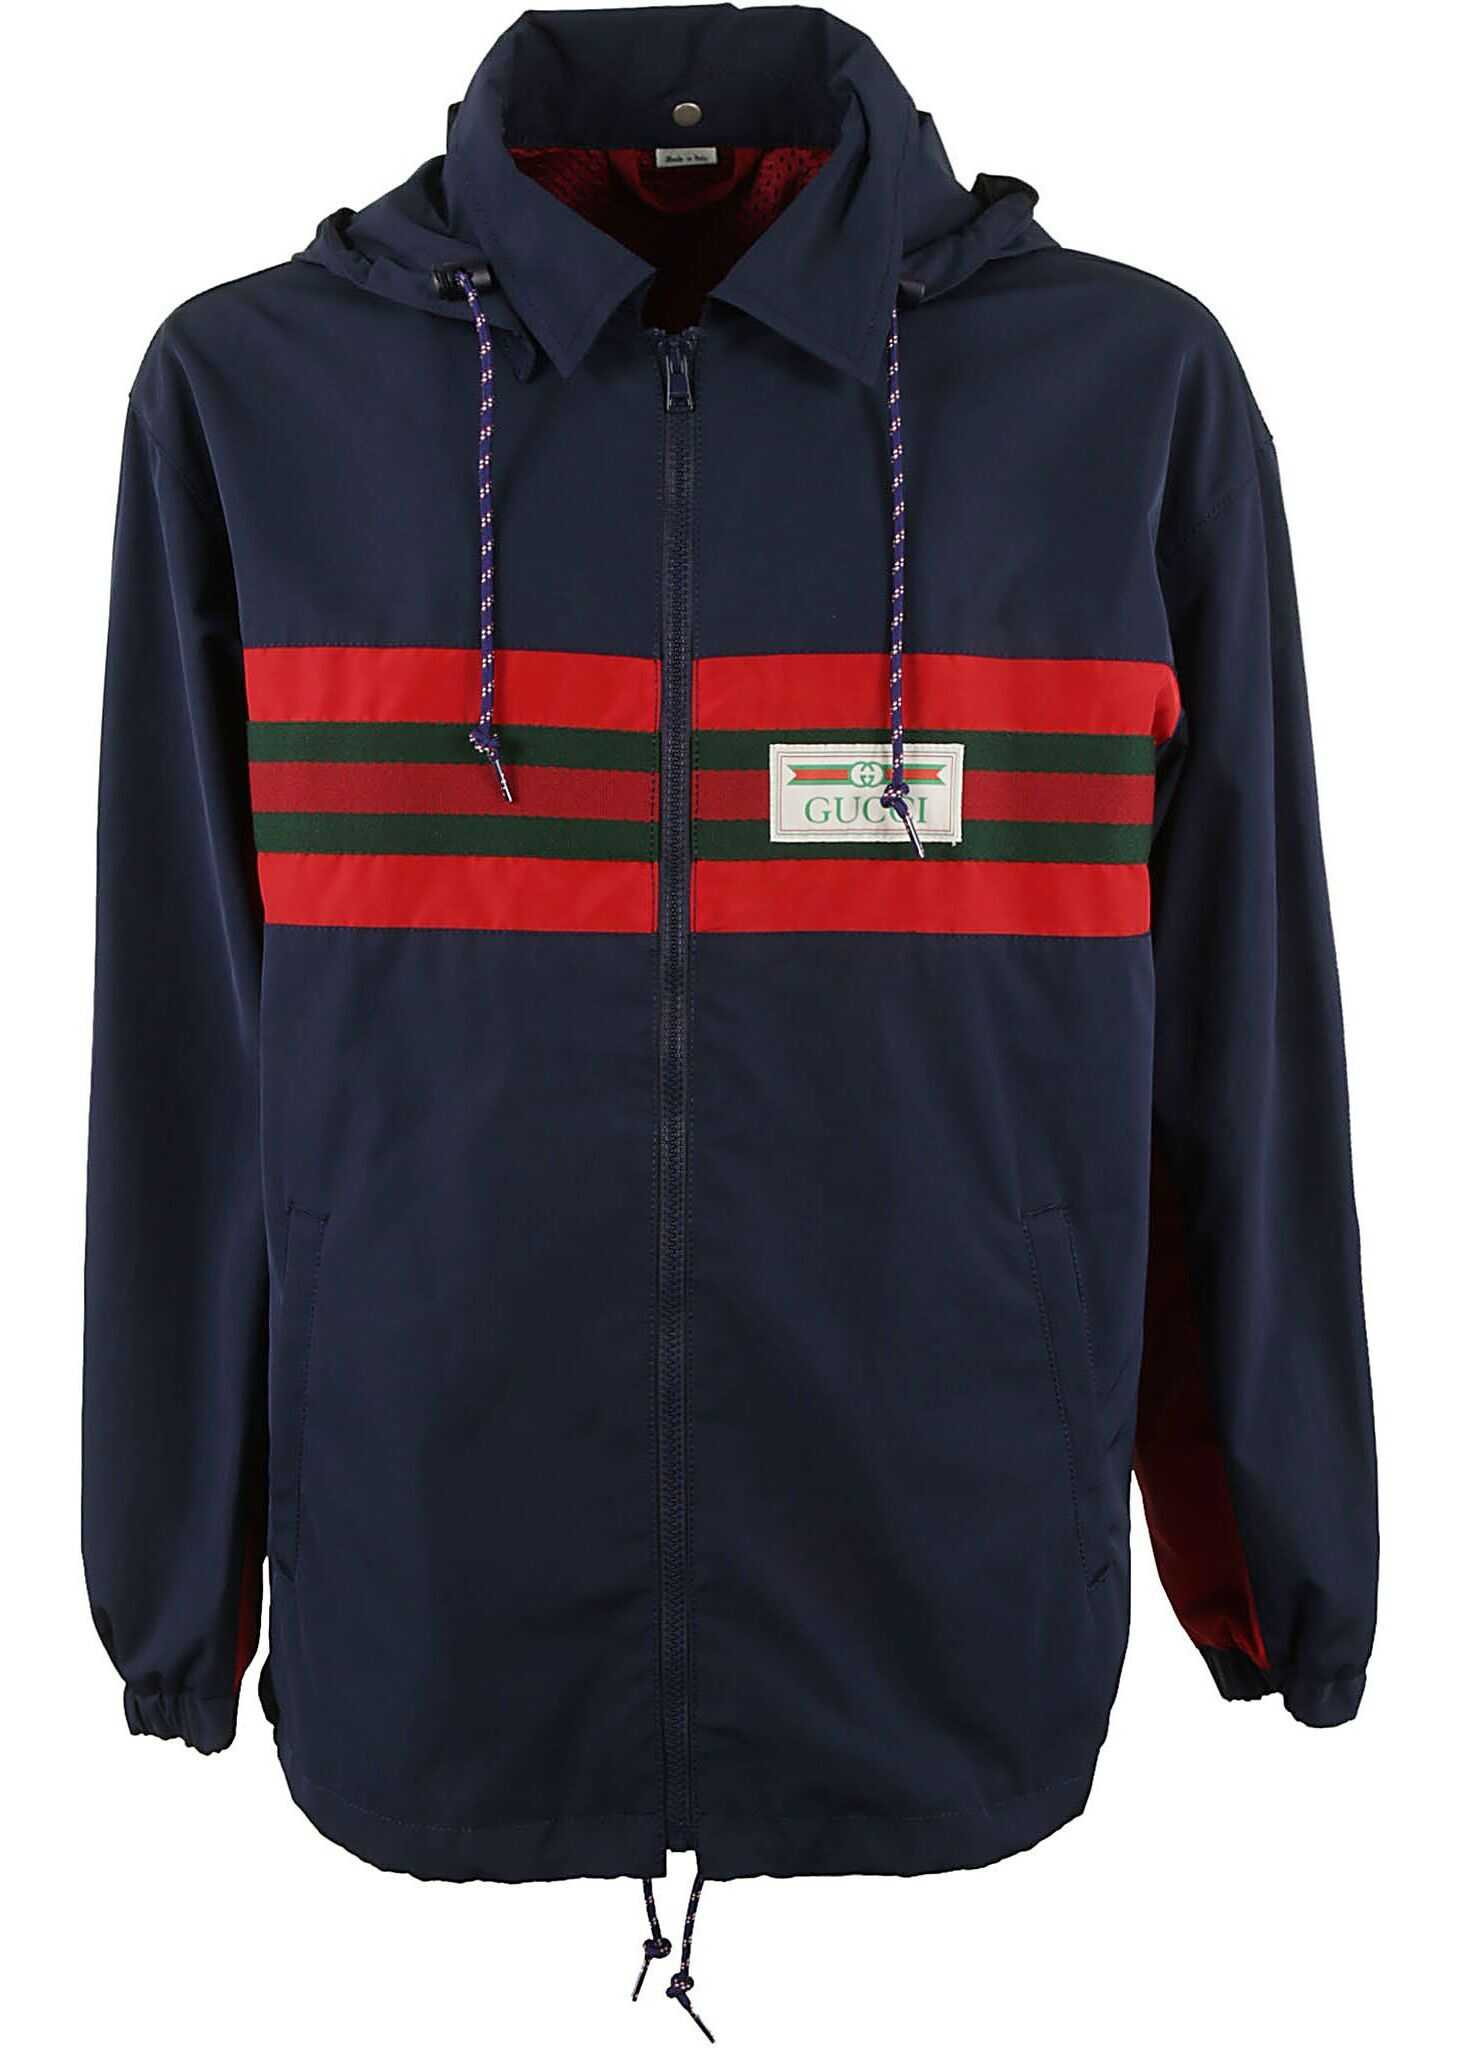 Gucci Polyester Outerwear Jacket BLUE